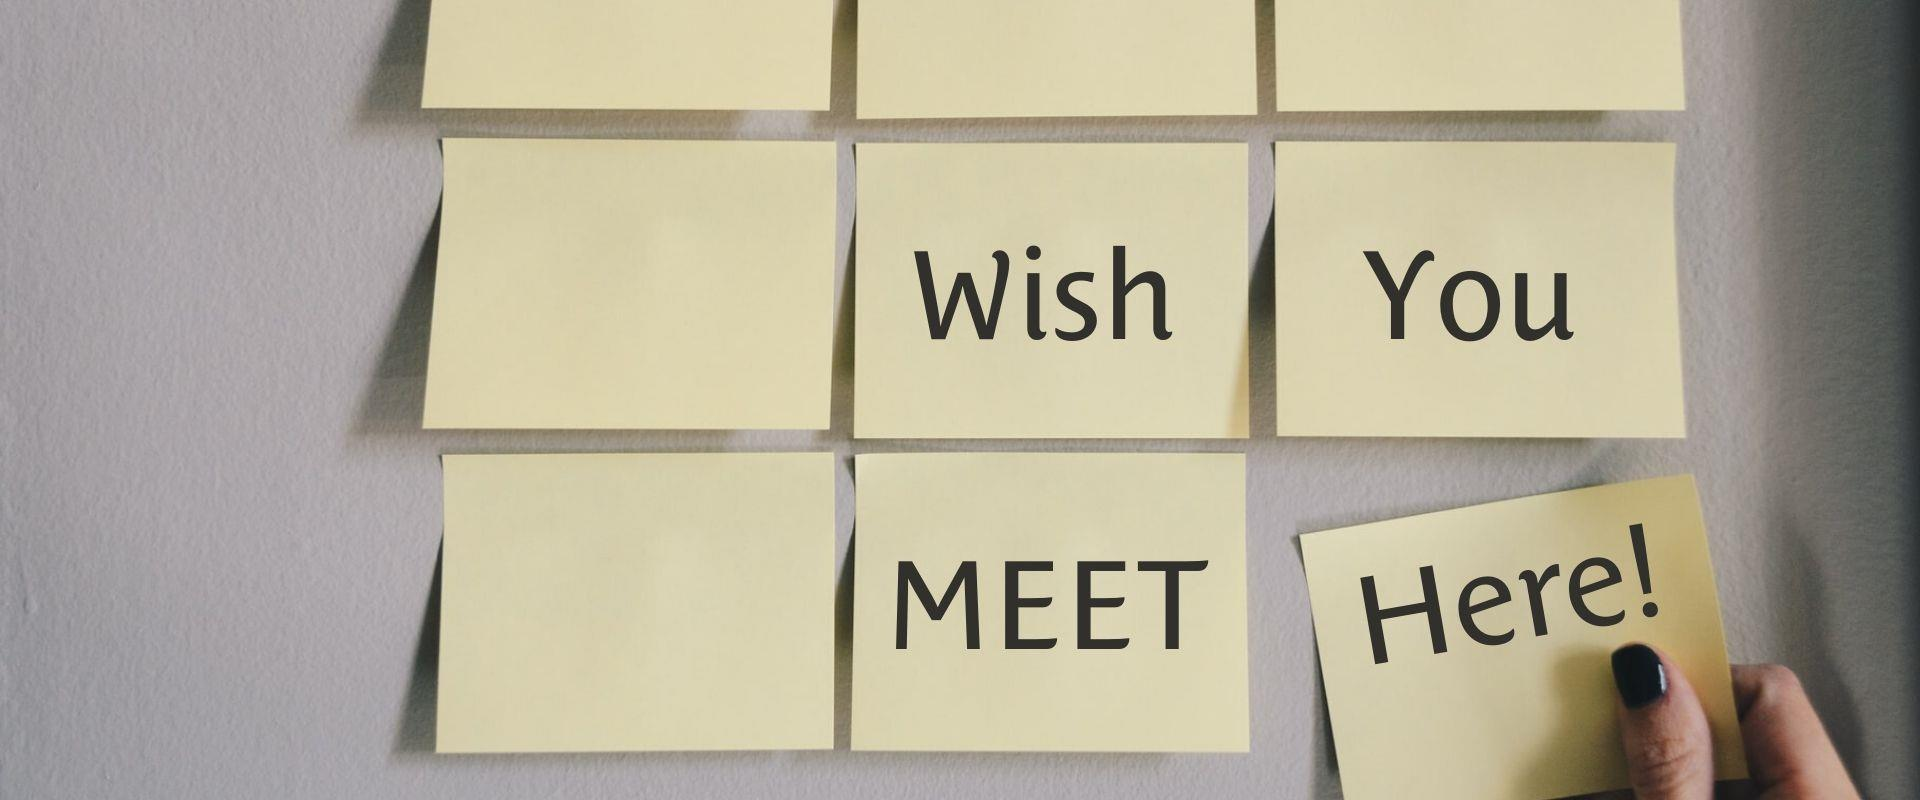 Wish You Meet - CTC Hotel Verona